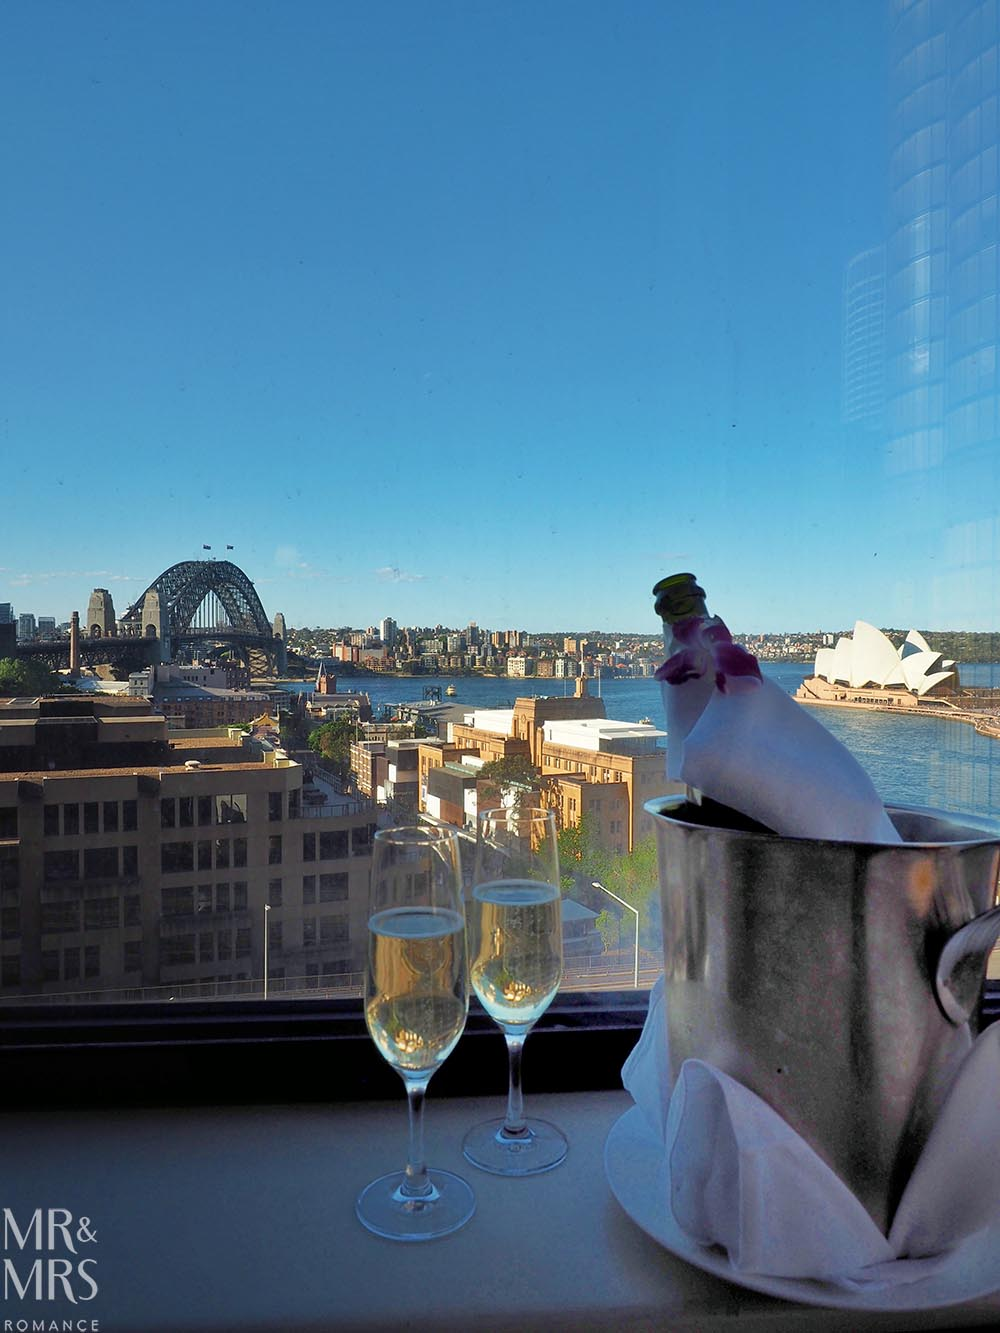 Romantic Sydney hotels - Hotels.com x Mr & Mrs Romance - Four Seasons Sydney view